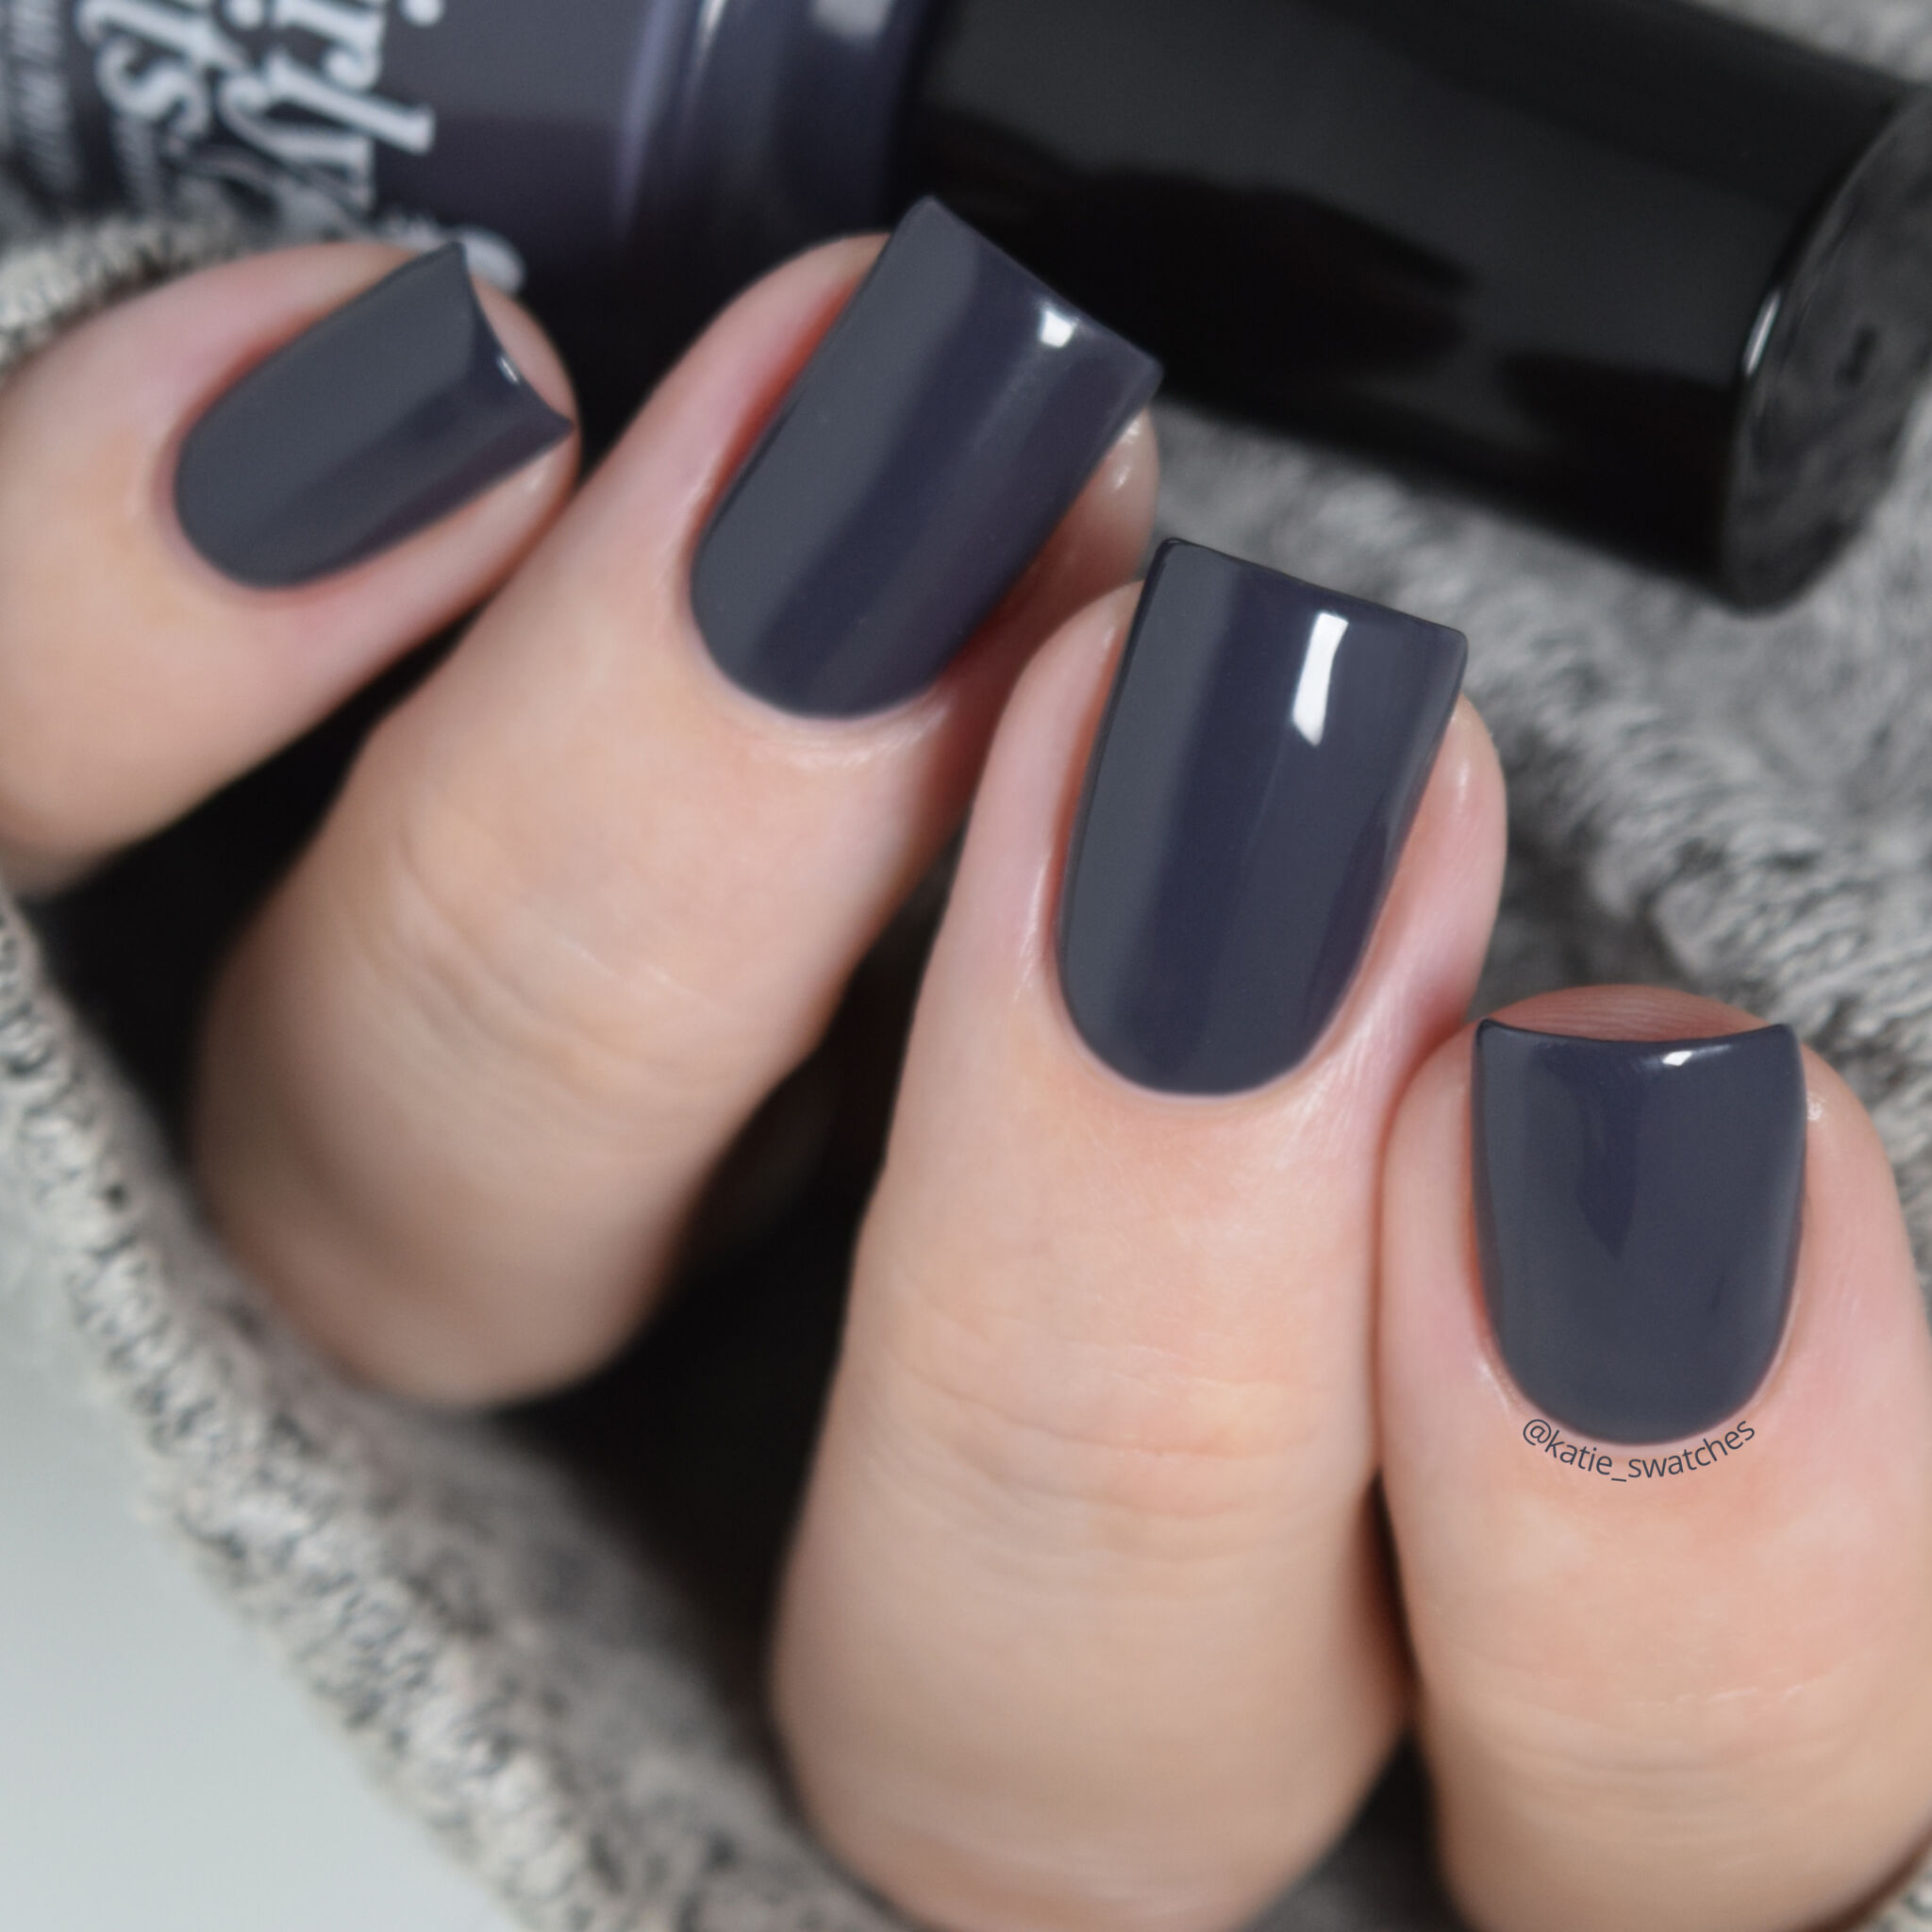 Girly Bits - I'm Pun-decided deep, not quite black, smoky blue crelly nail polish swatch